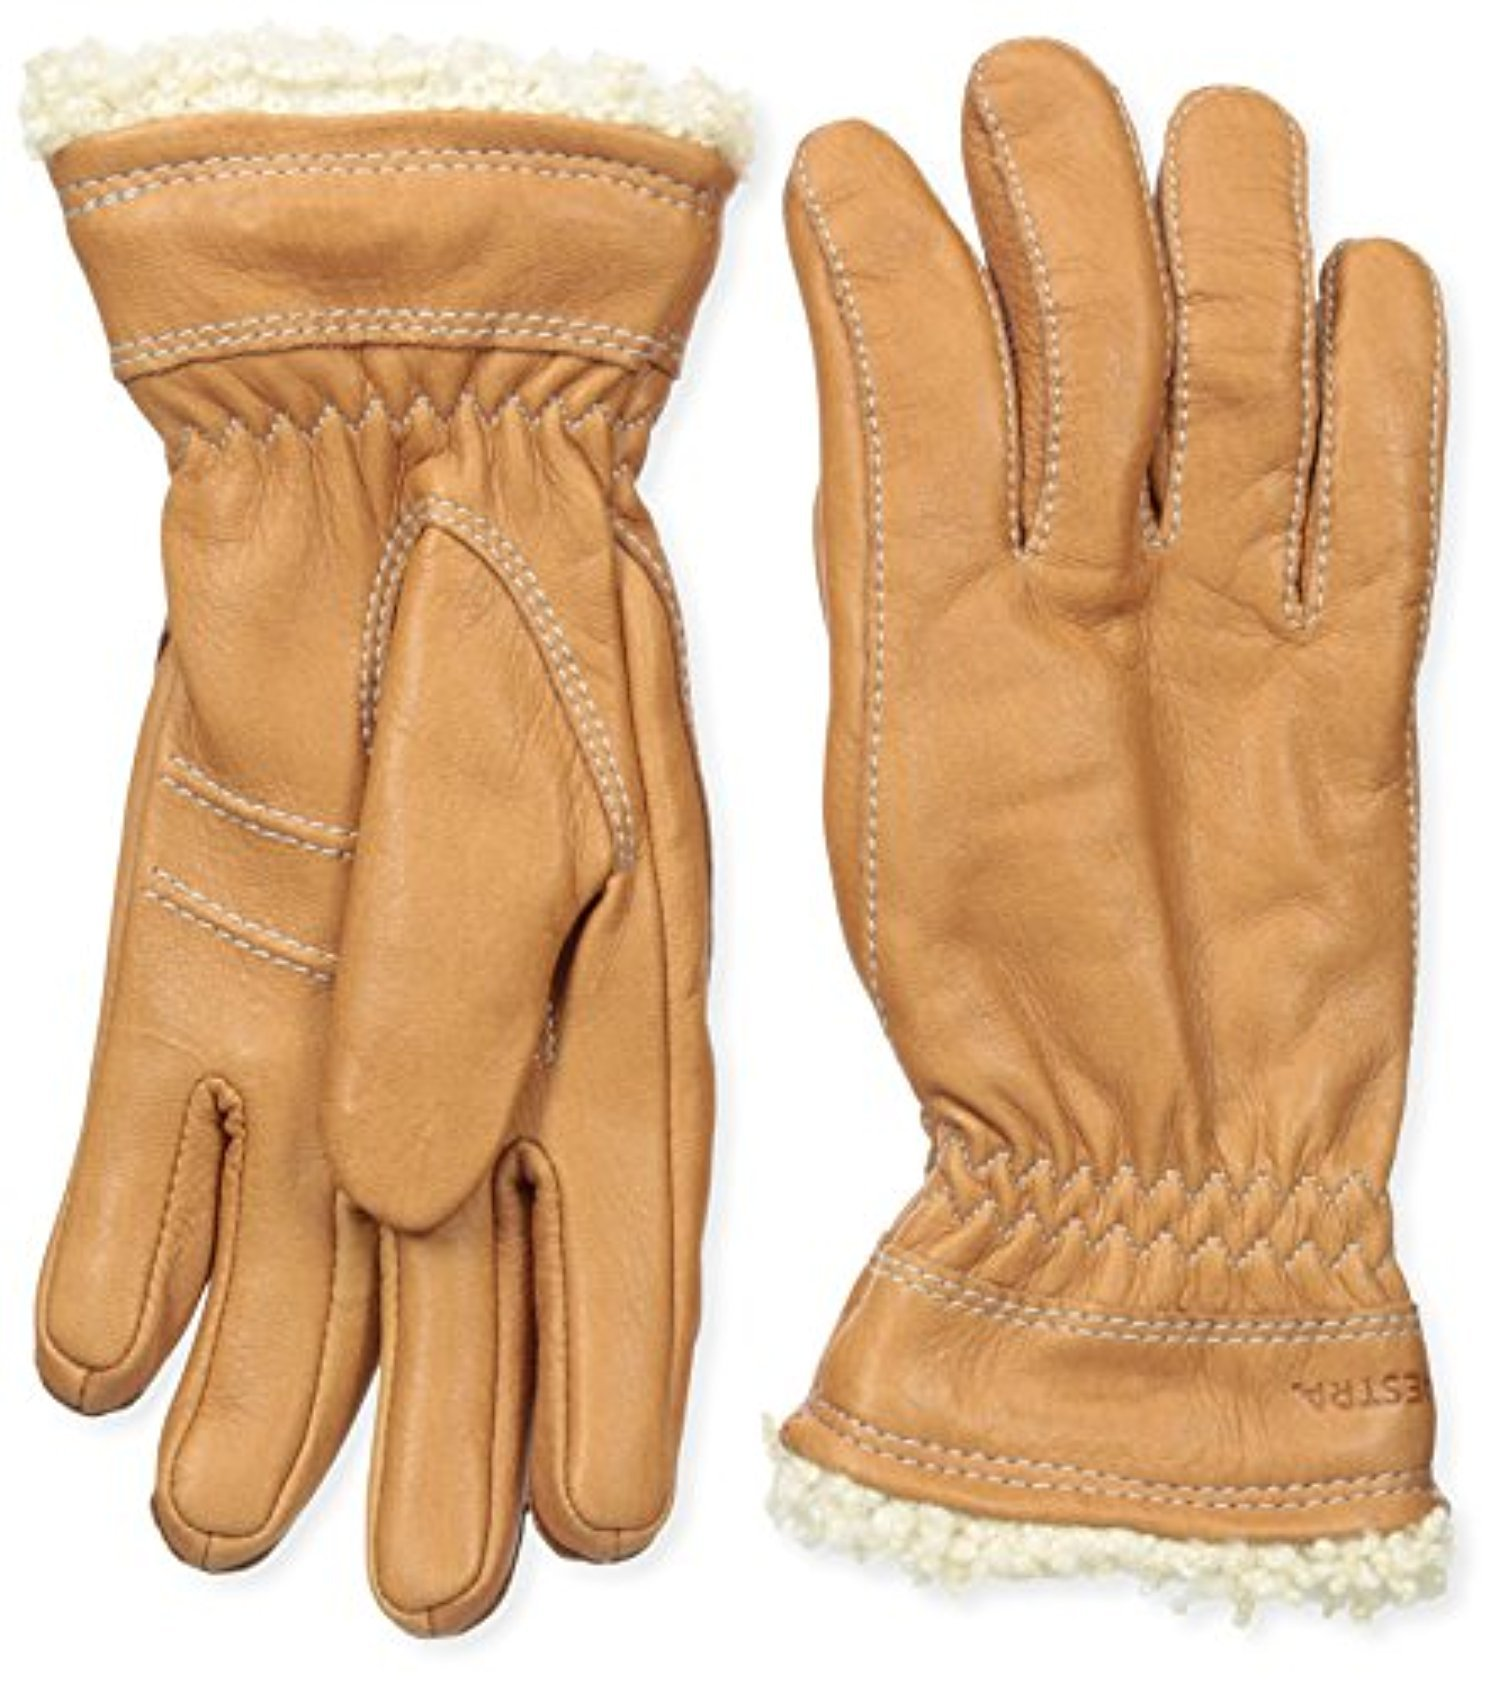 Hestra Women's Deerskin Primaloft Gloves Cork 6 & Knit Cap Bundle